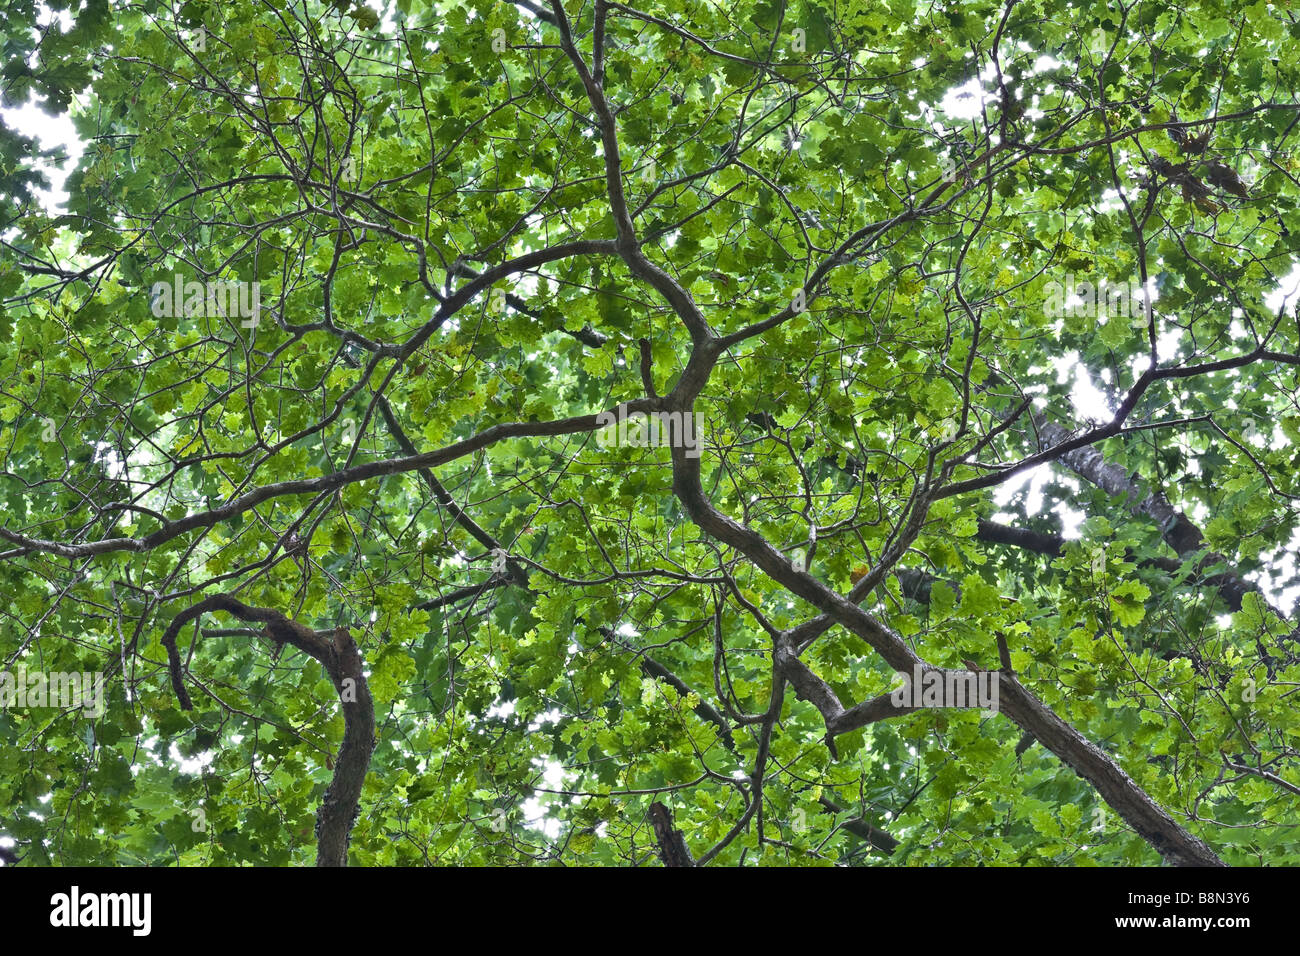 Branch of a tree from below Horizontal shot - Stock Image